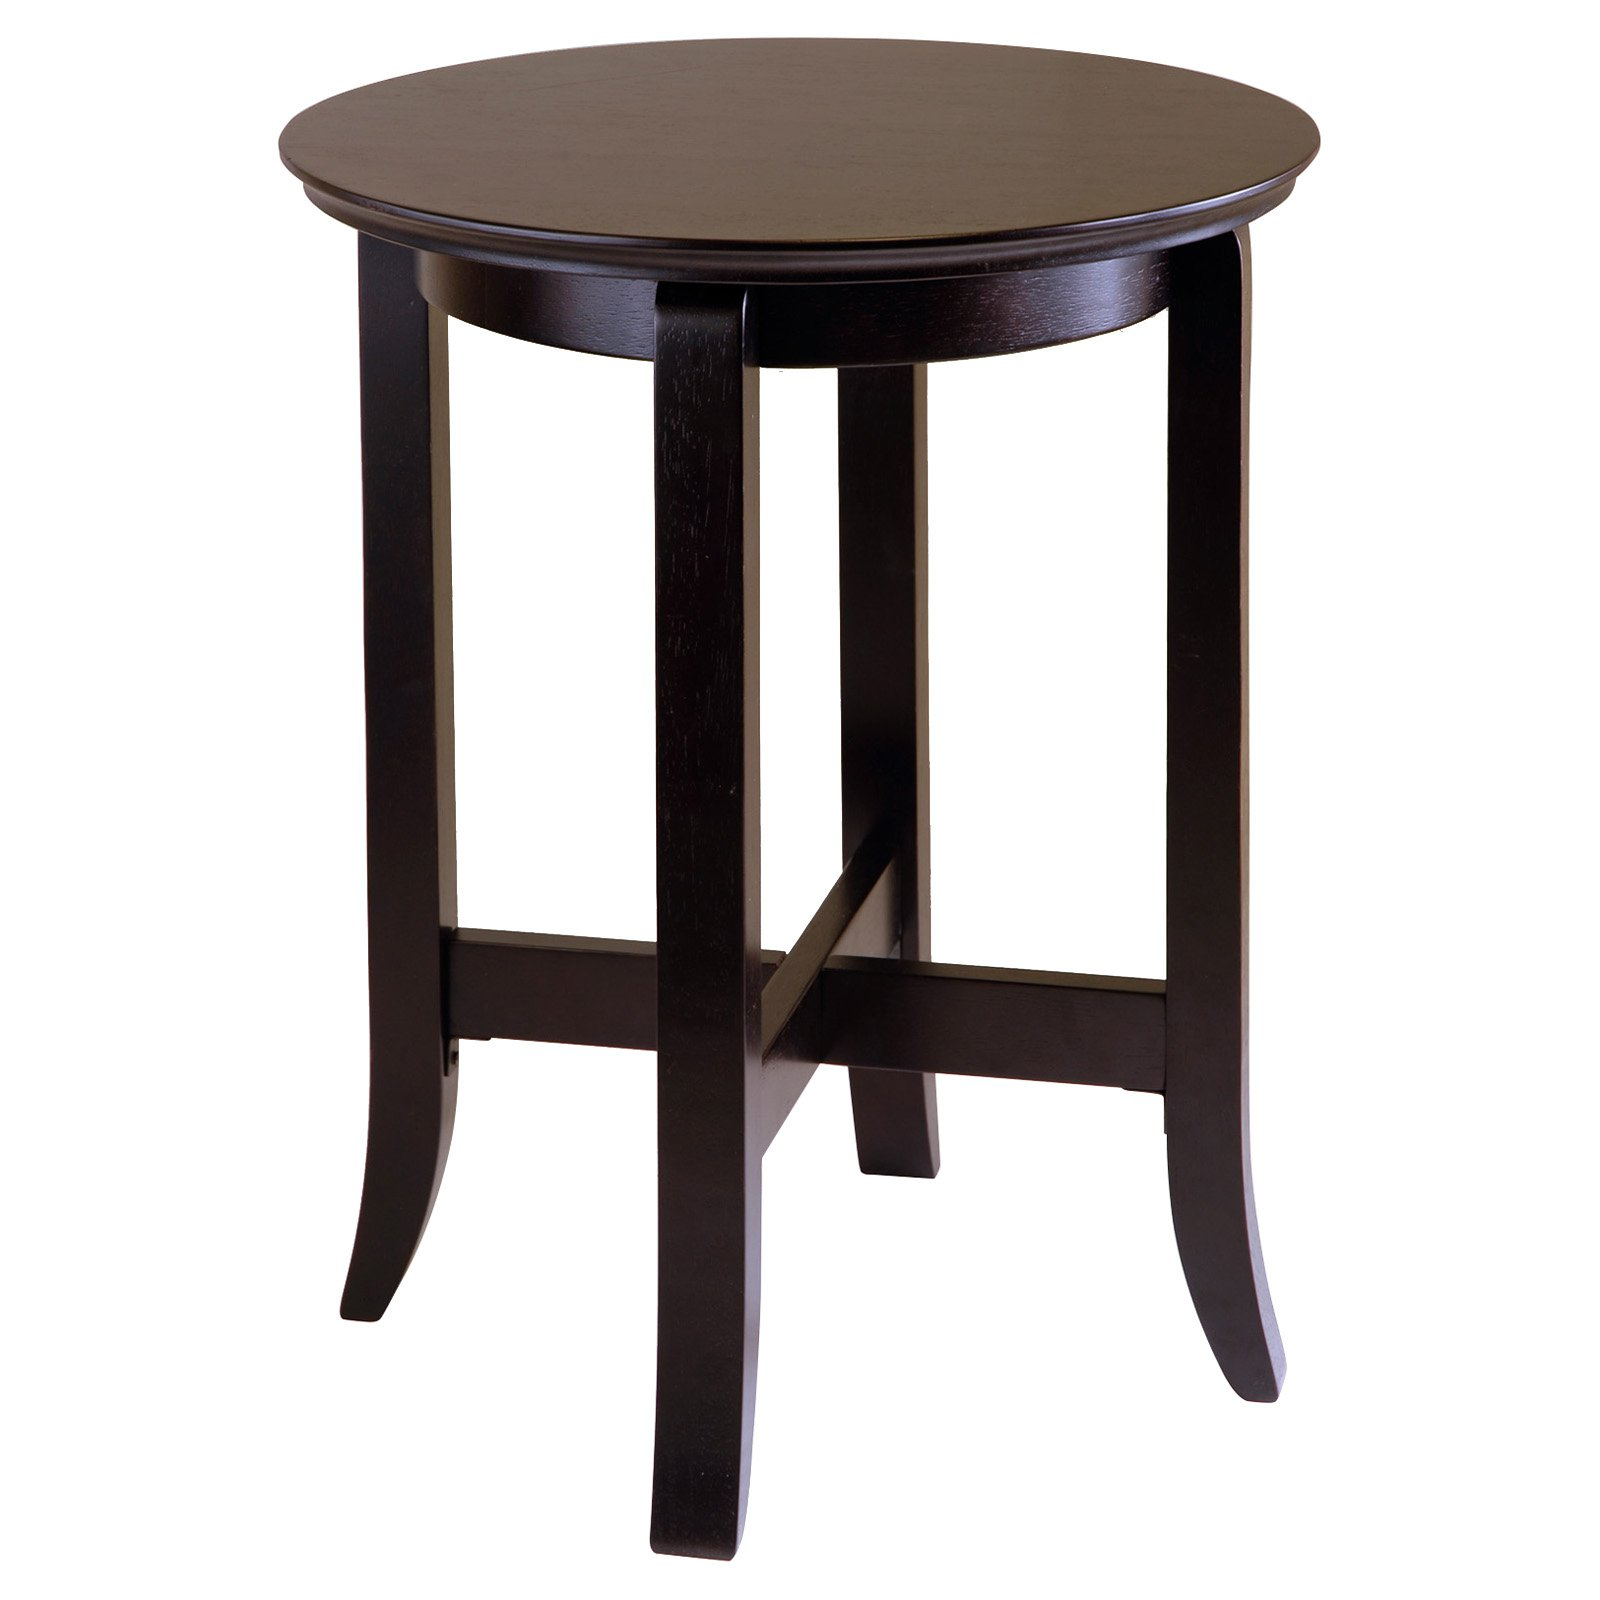 Winsome Wood Toby Round Accent Table, Espresso Finish